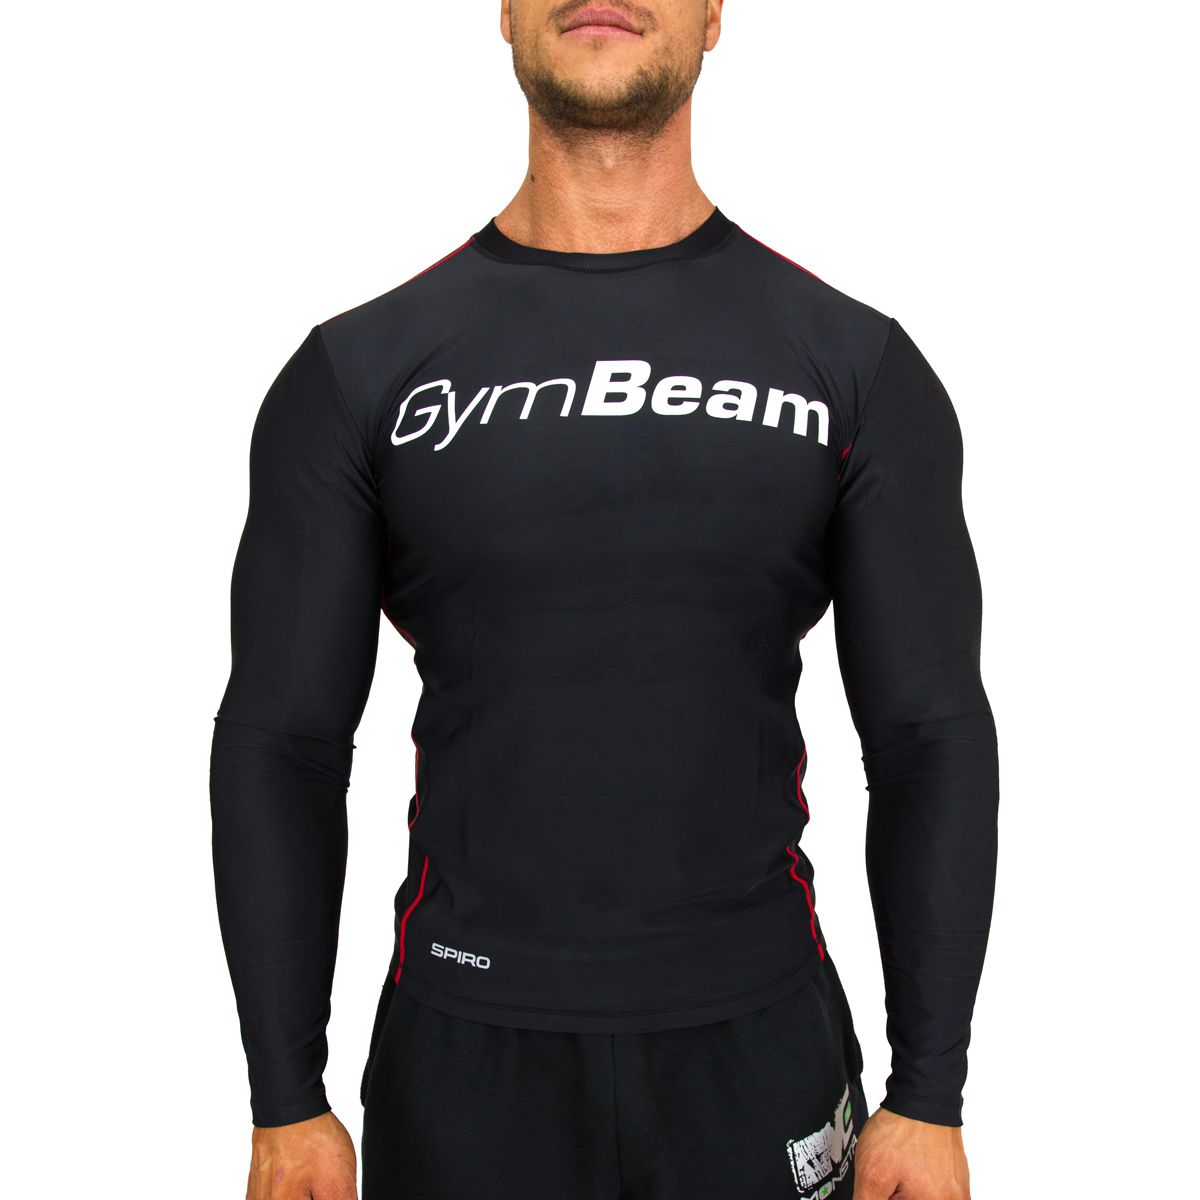 Kompresné tričko Spiro BlackWhite - Gym Beam - L